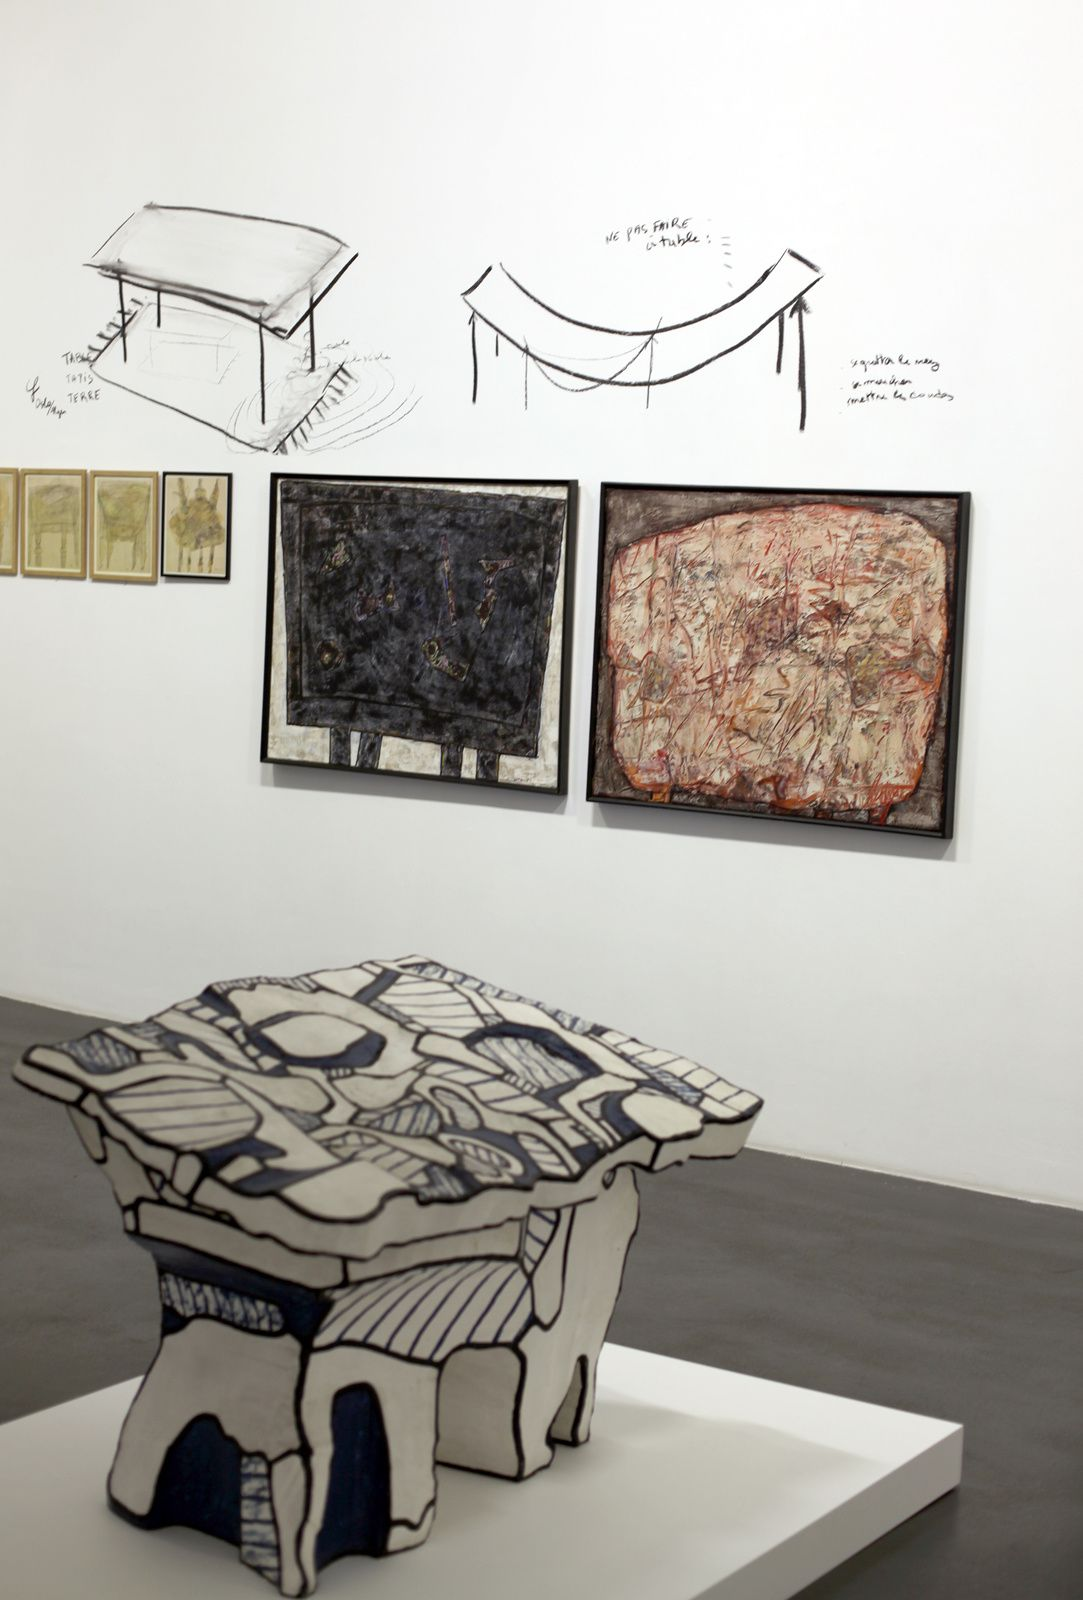 """Table logologique II"", 1969 de Jean DUBUFFET - Courtesy Galerie Nathalie OBADIA © Photo Éric Simon"